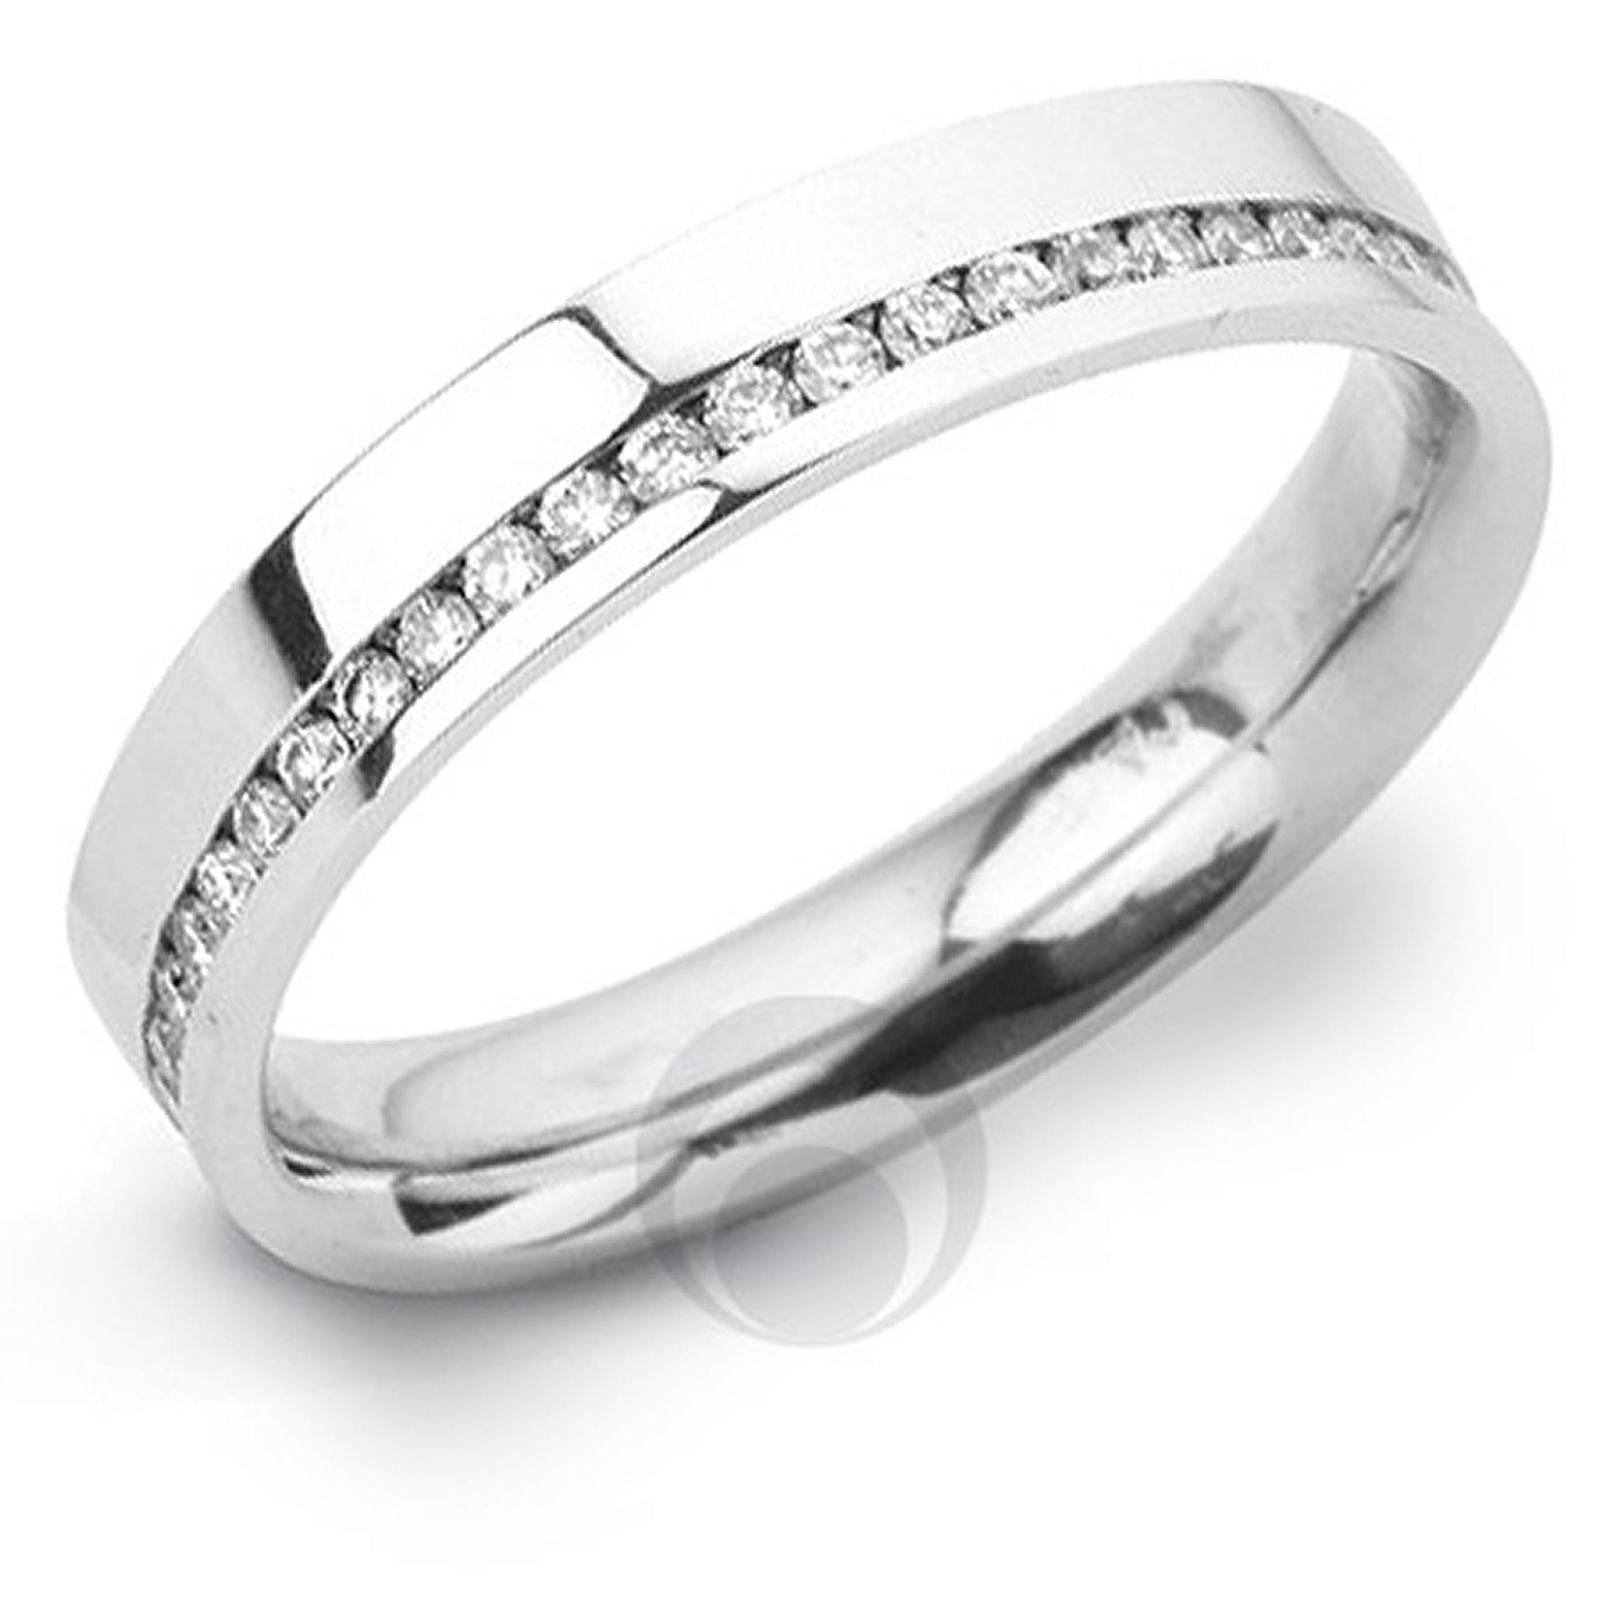 Channel Diamond Platinum Wedding Ring Wedding Dress From The In Diamond Platinum Wedding Rings (View 3 of 15)